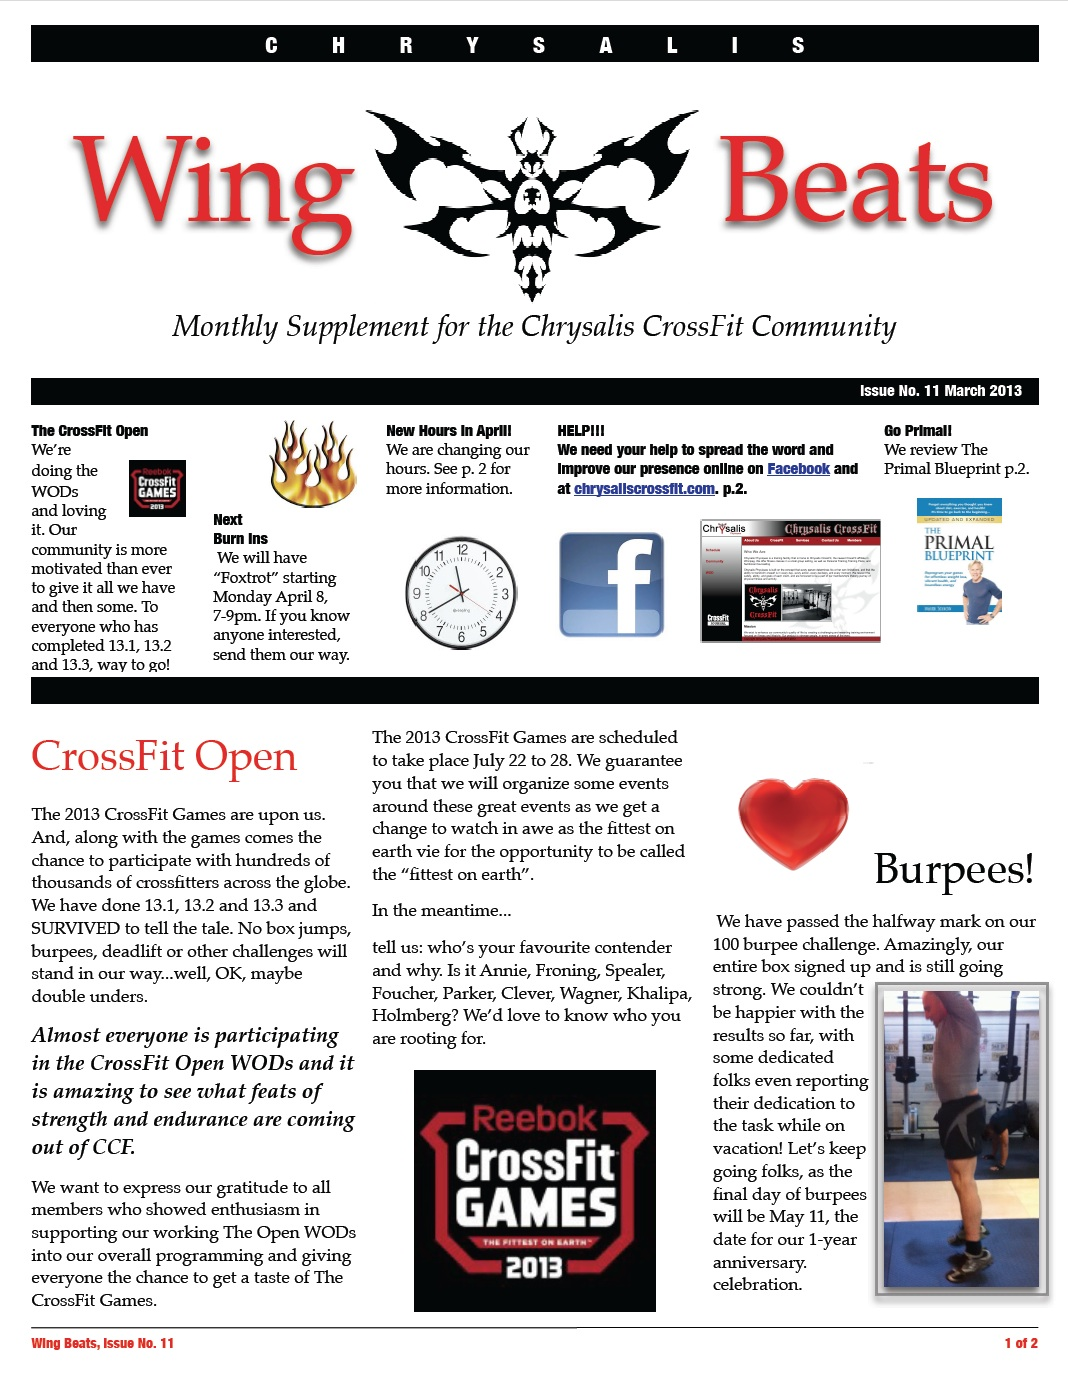 WingBeats Issue #11 - March 2012